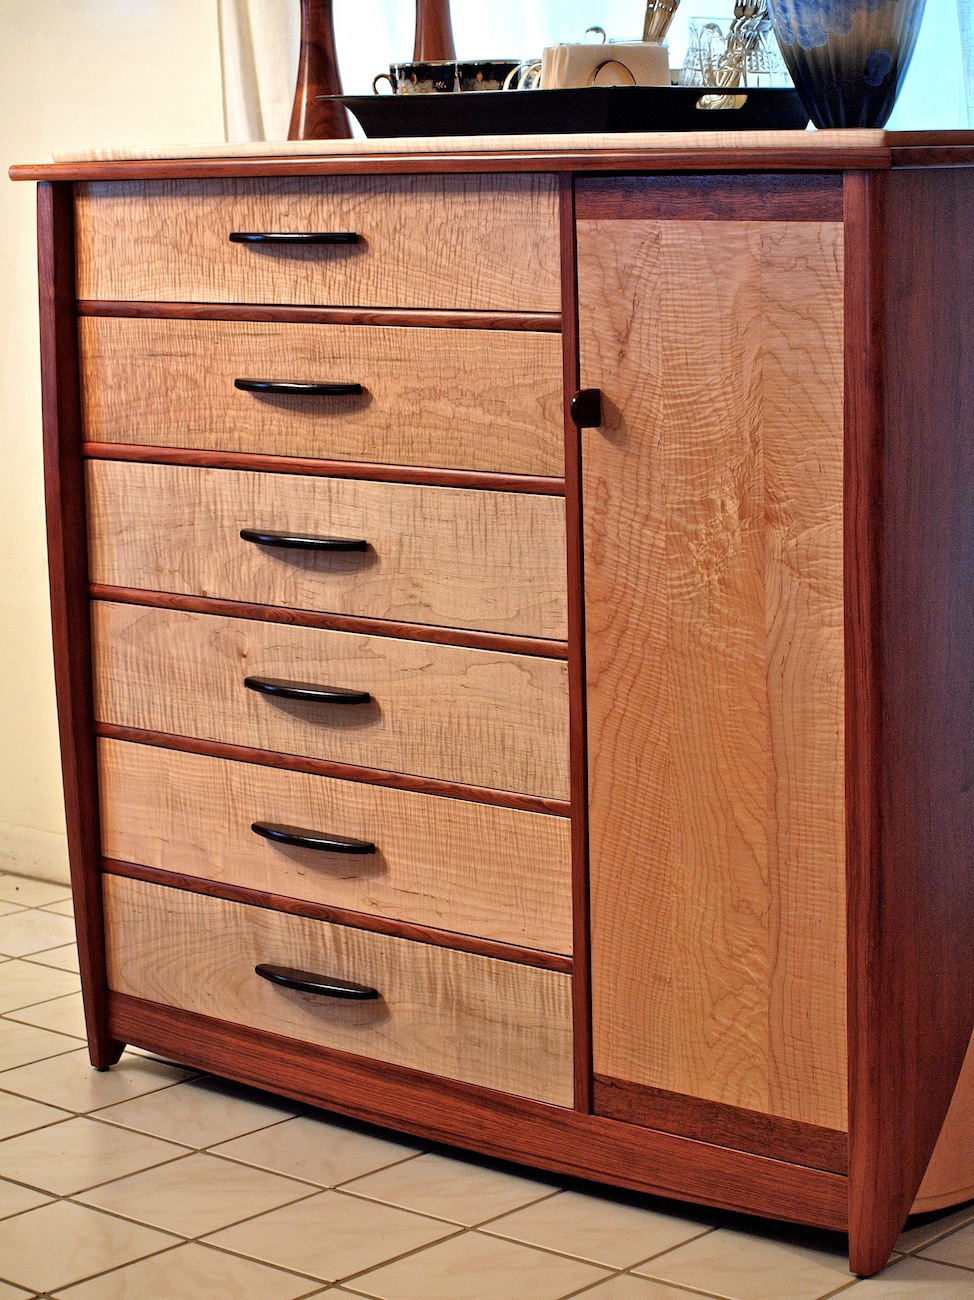 Custom Handmade Dresser In Bubinga & Curly Maple – Louis ...